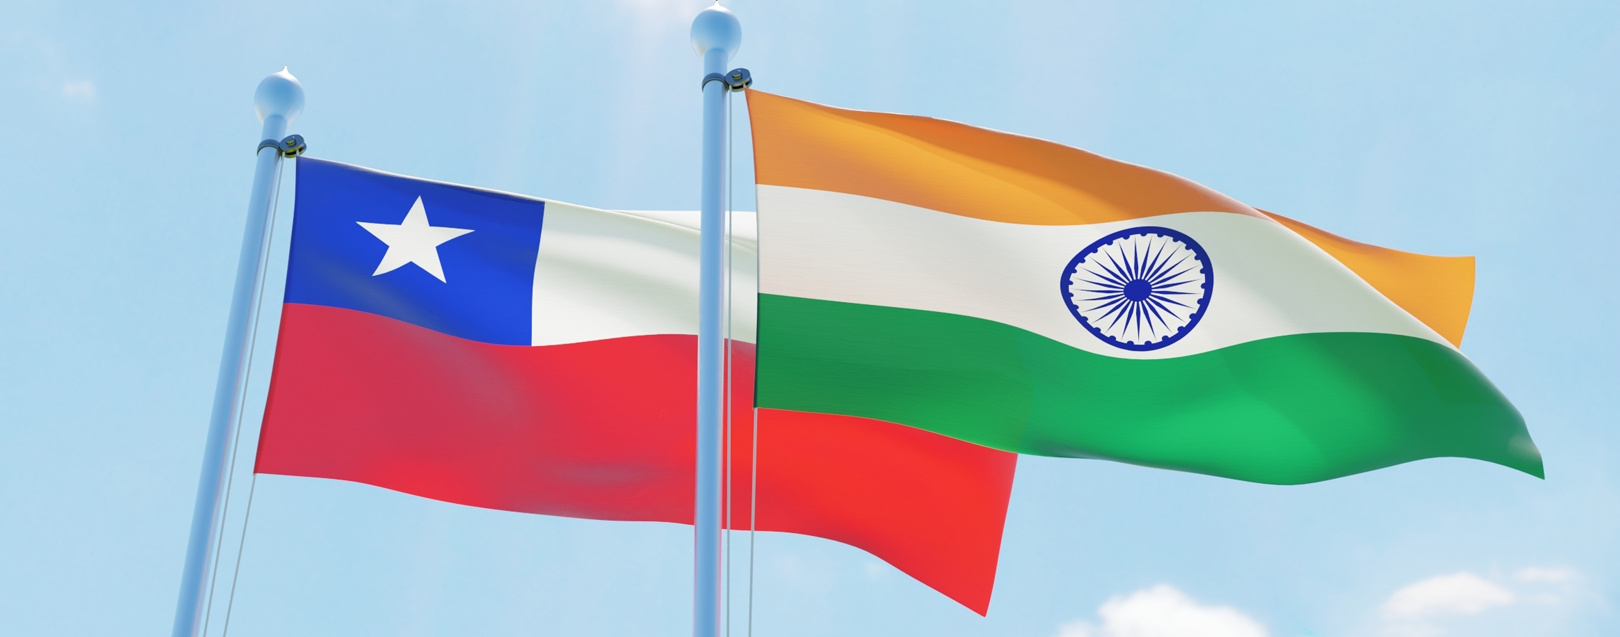 'Chile is open to support India's candidature for APEC'